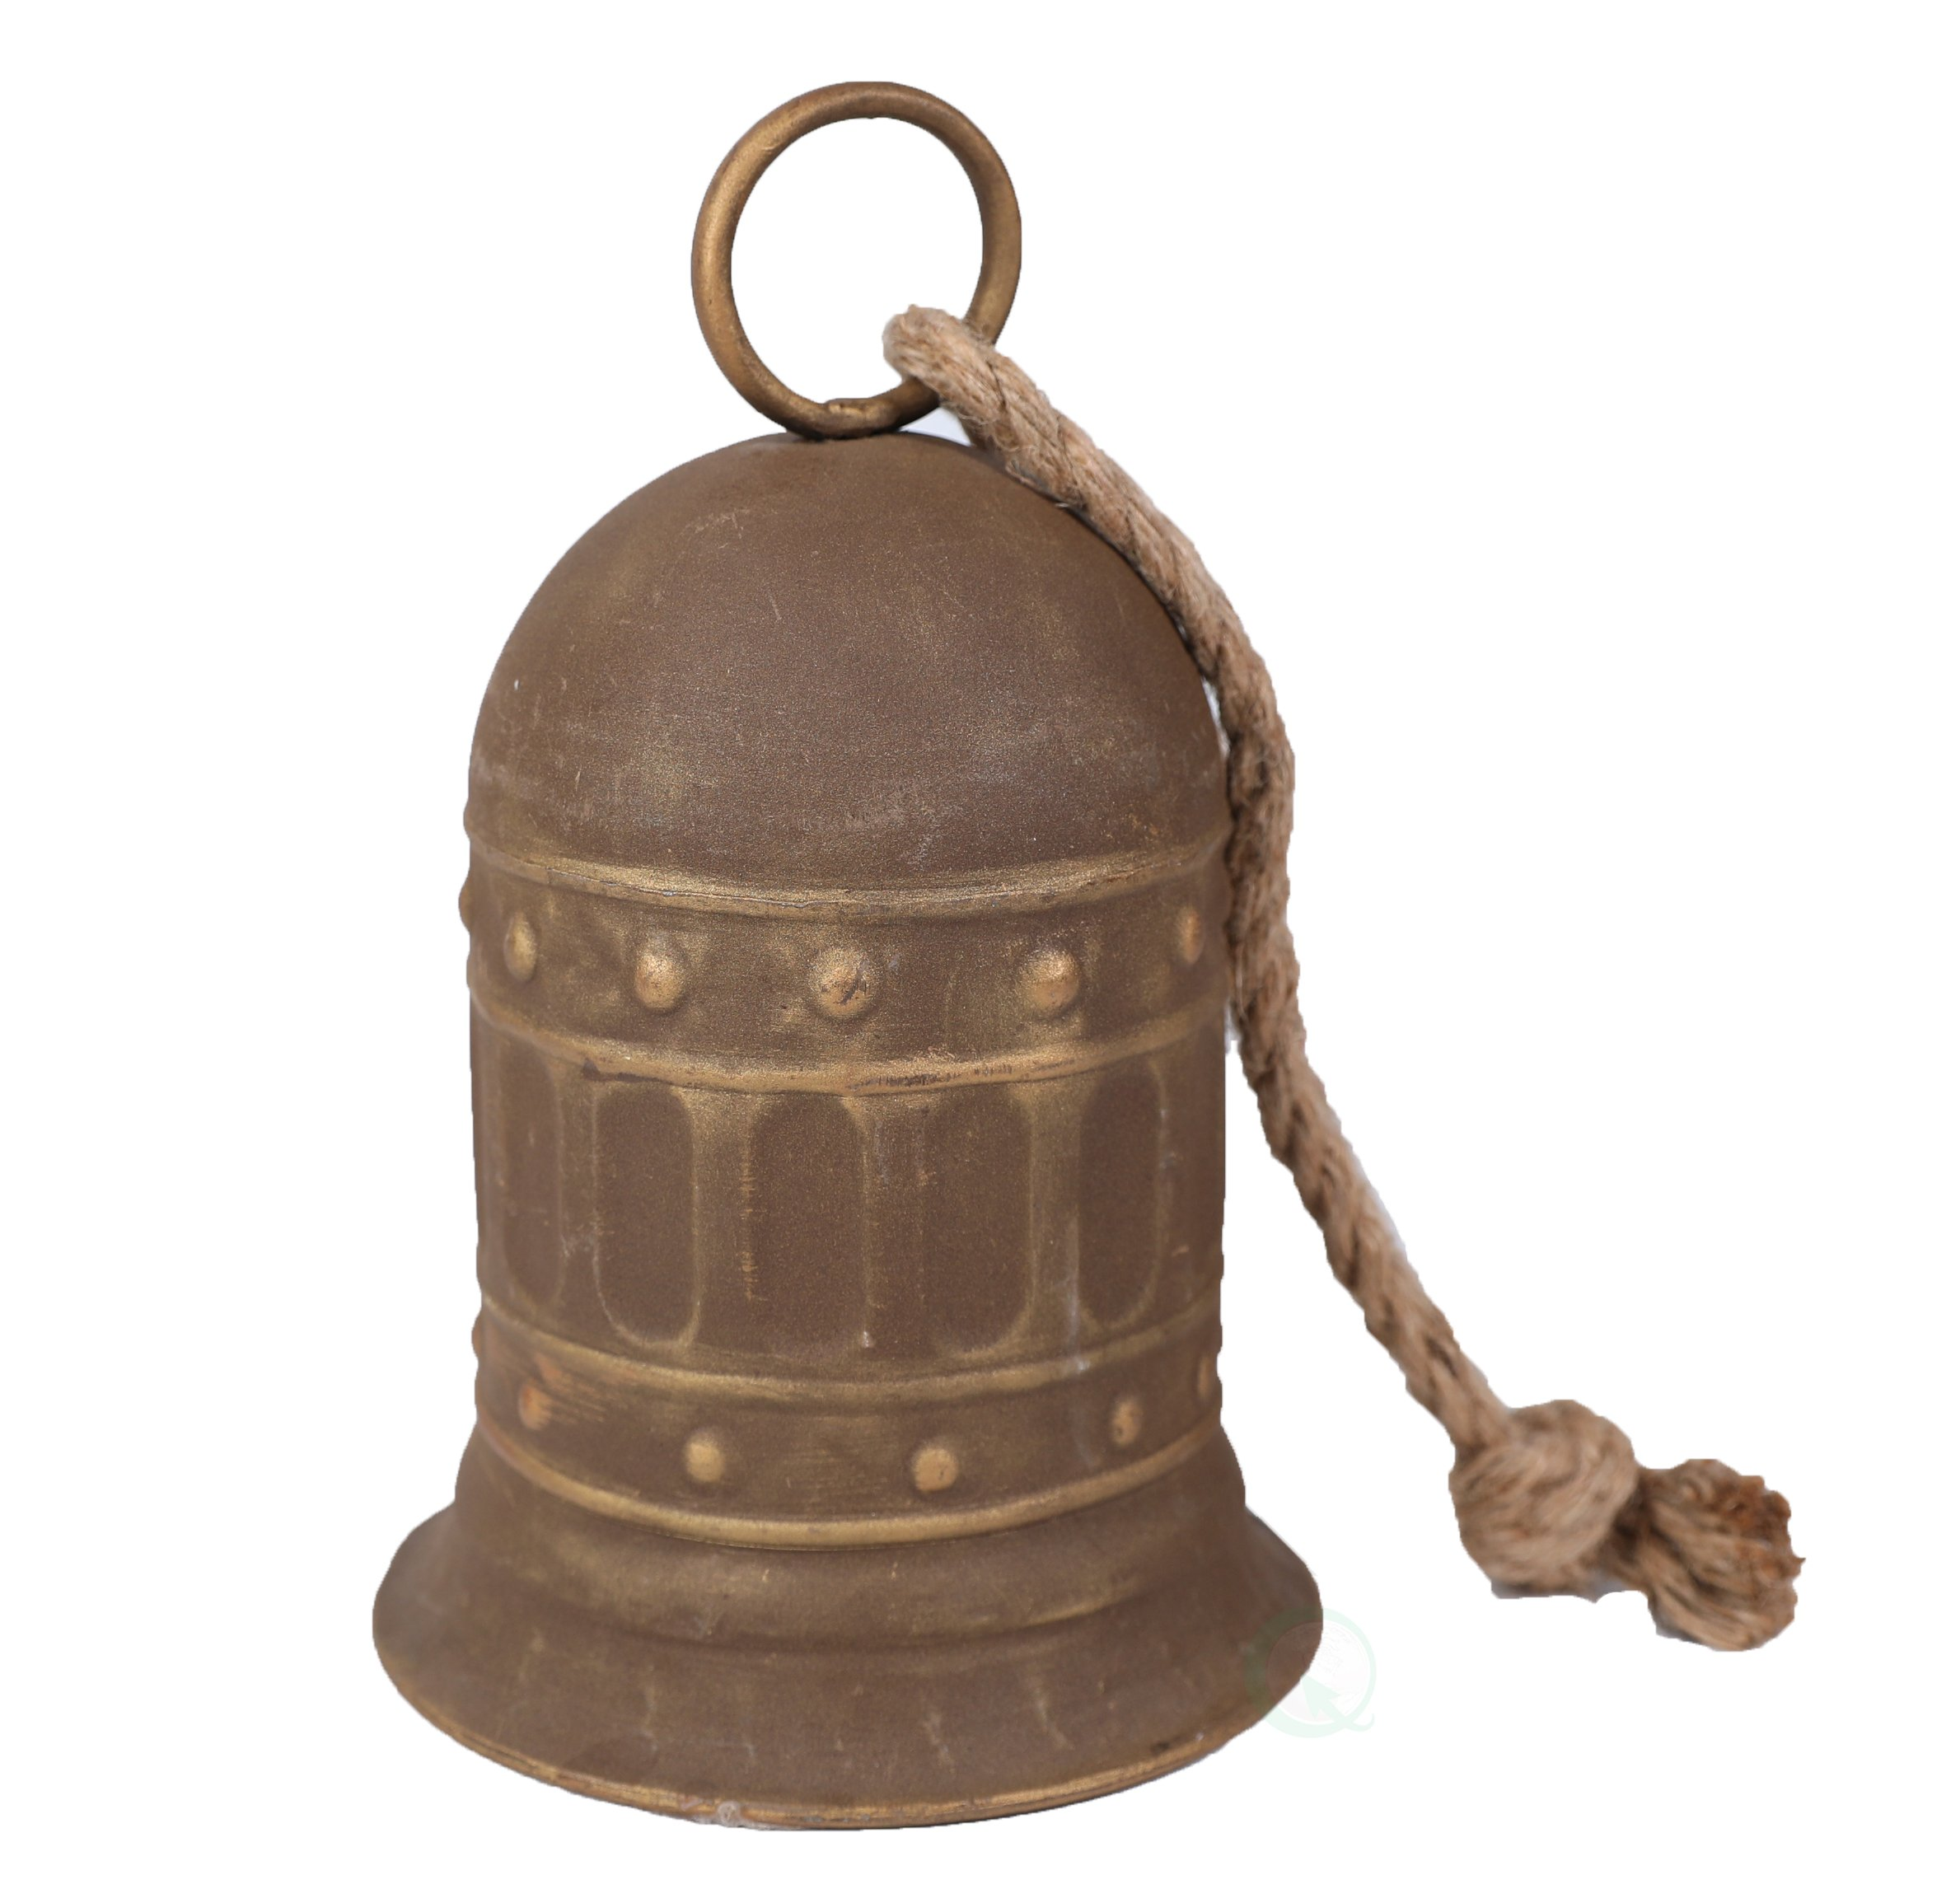 7'' Antique Style Large Decorative Metal Bell for Garden and Home Decor